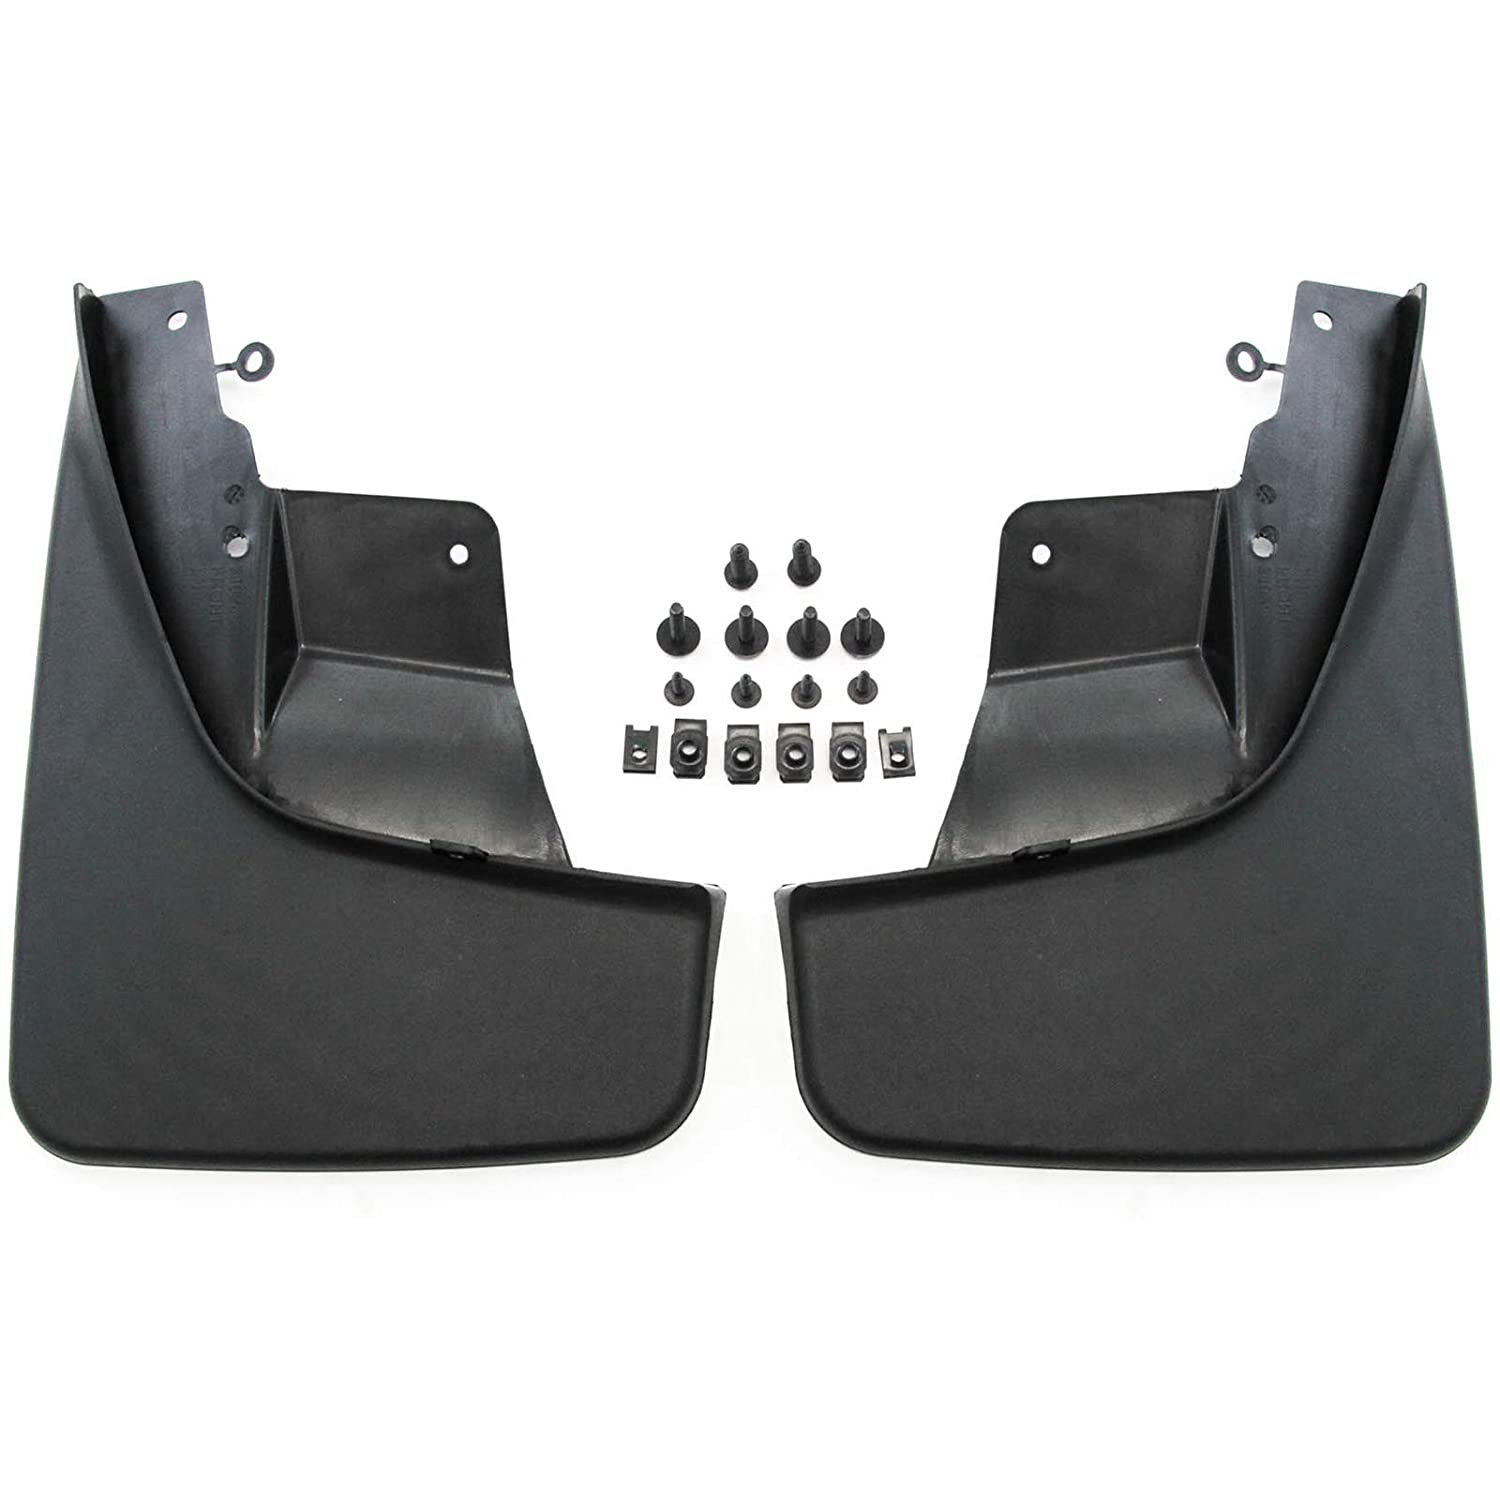 Red Hound Auto 2011-2018 Compatible with Jeep Grand Cherokee Mud Flaps Mud Guards Splash Front Molded 2pc Pair